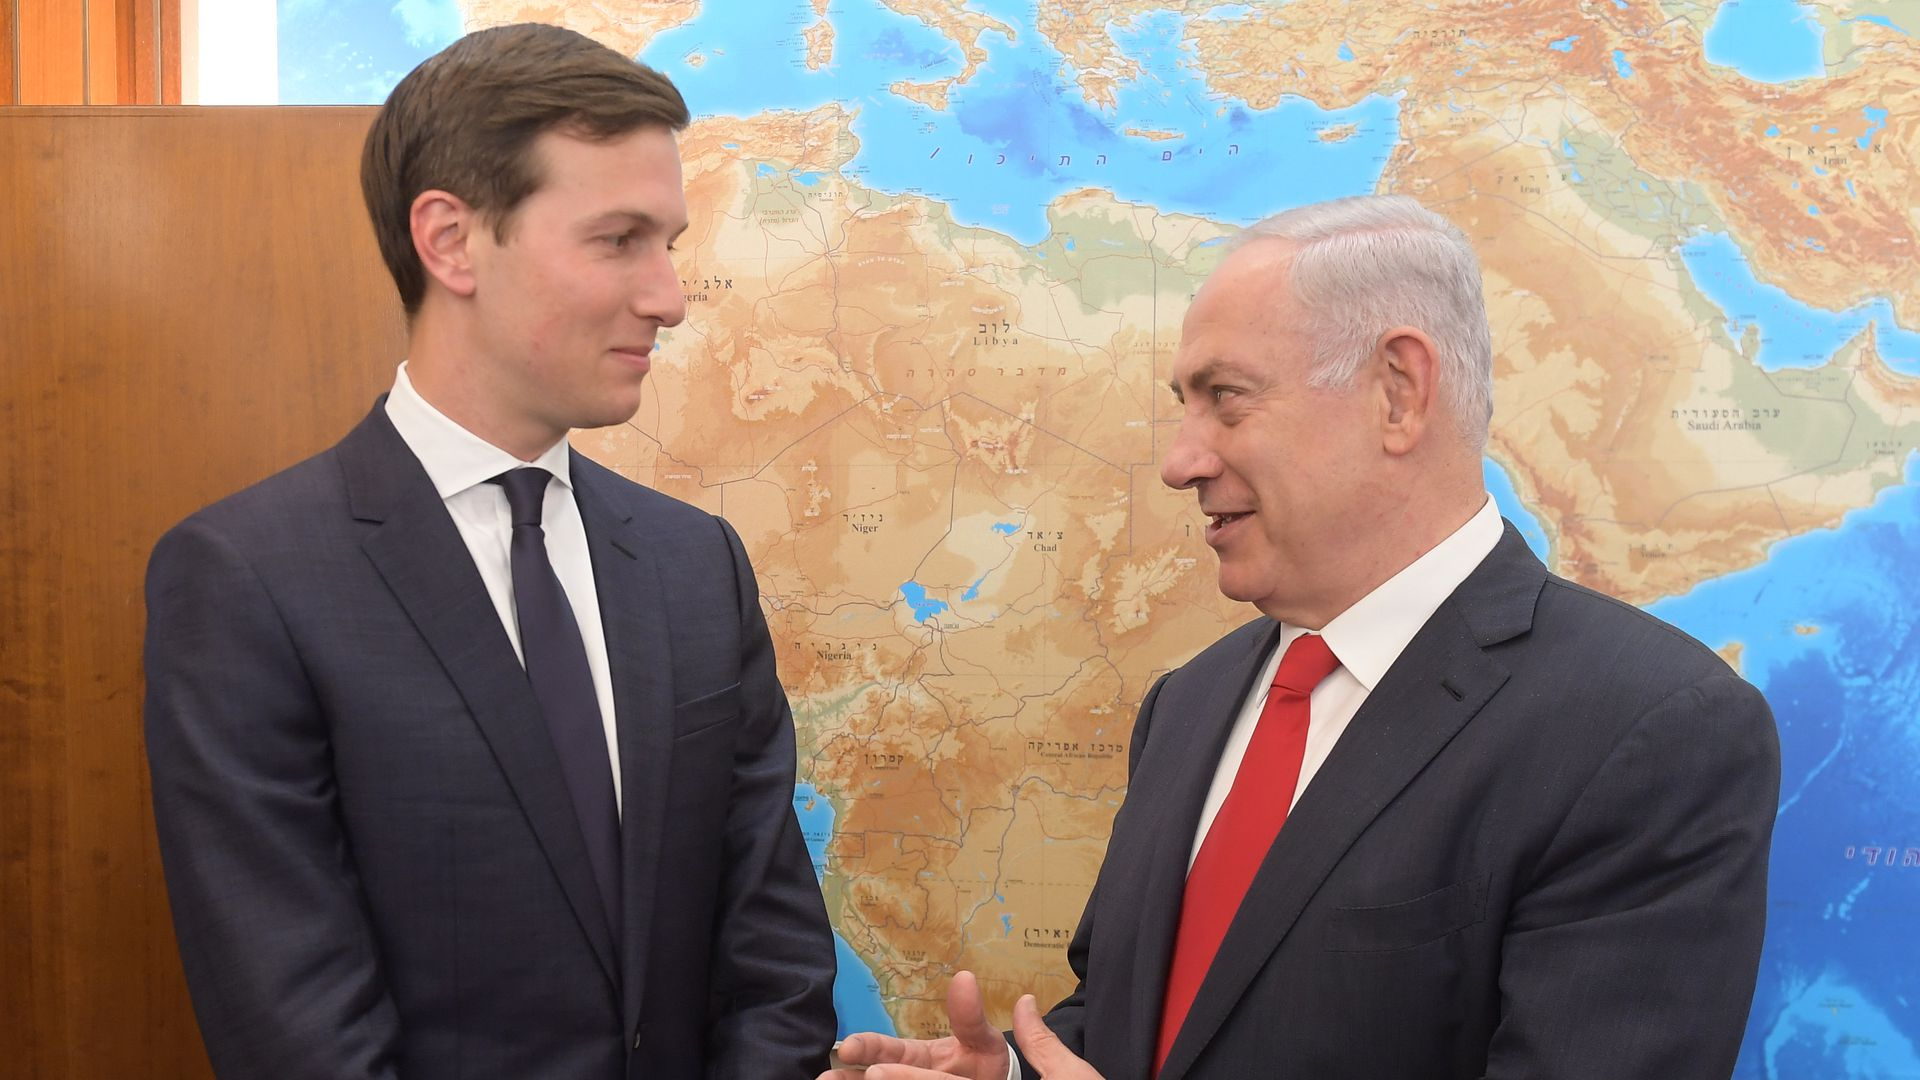 Jared Kushner with Netanyahu